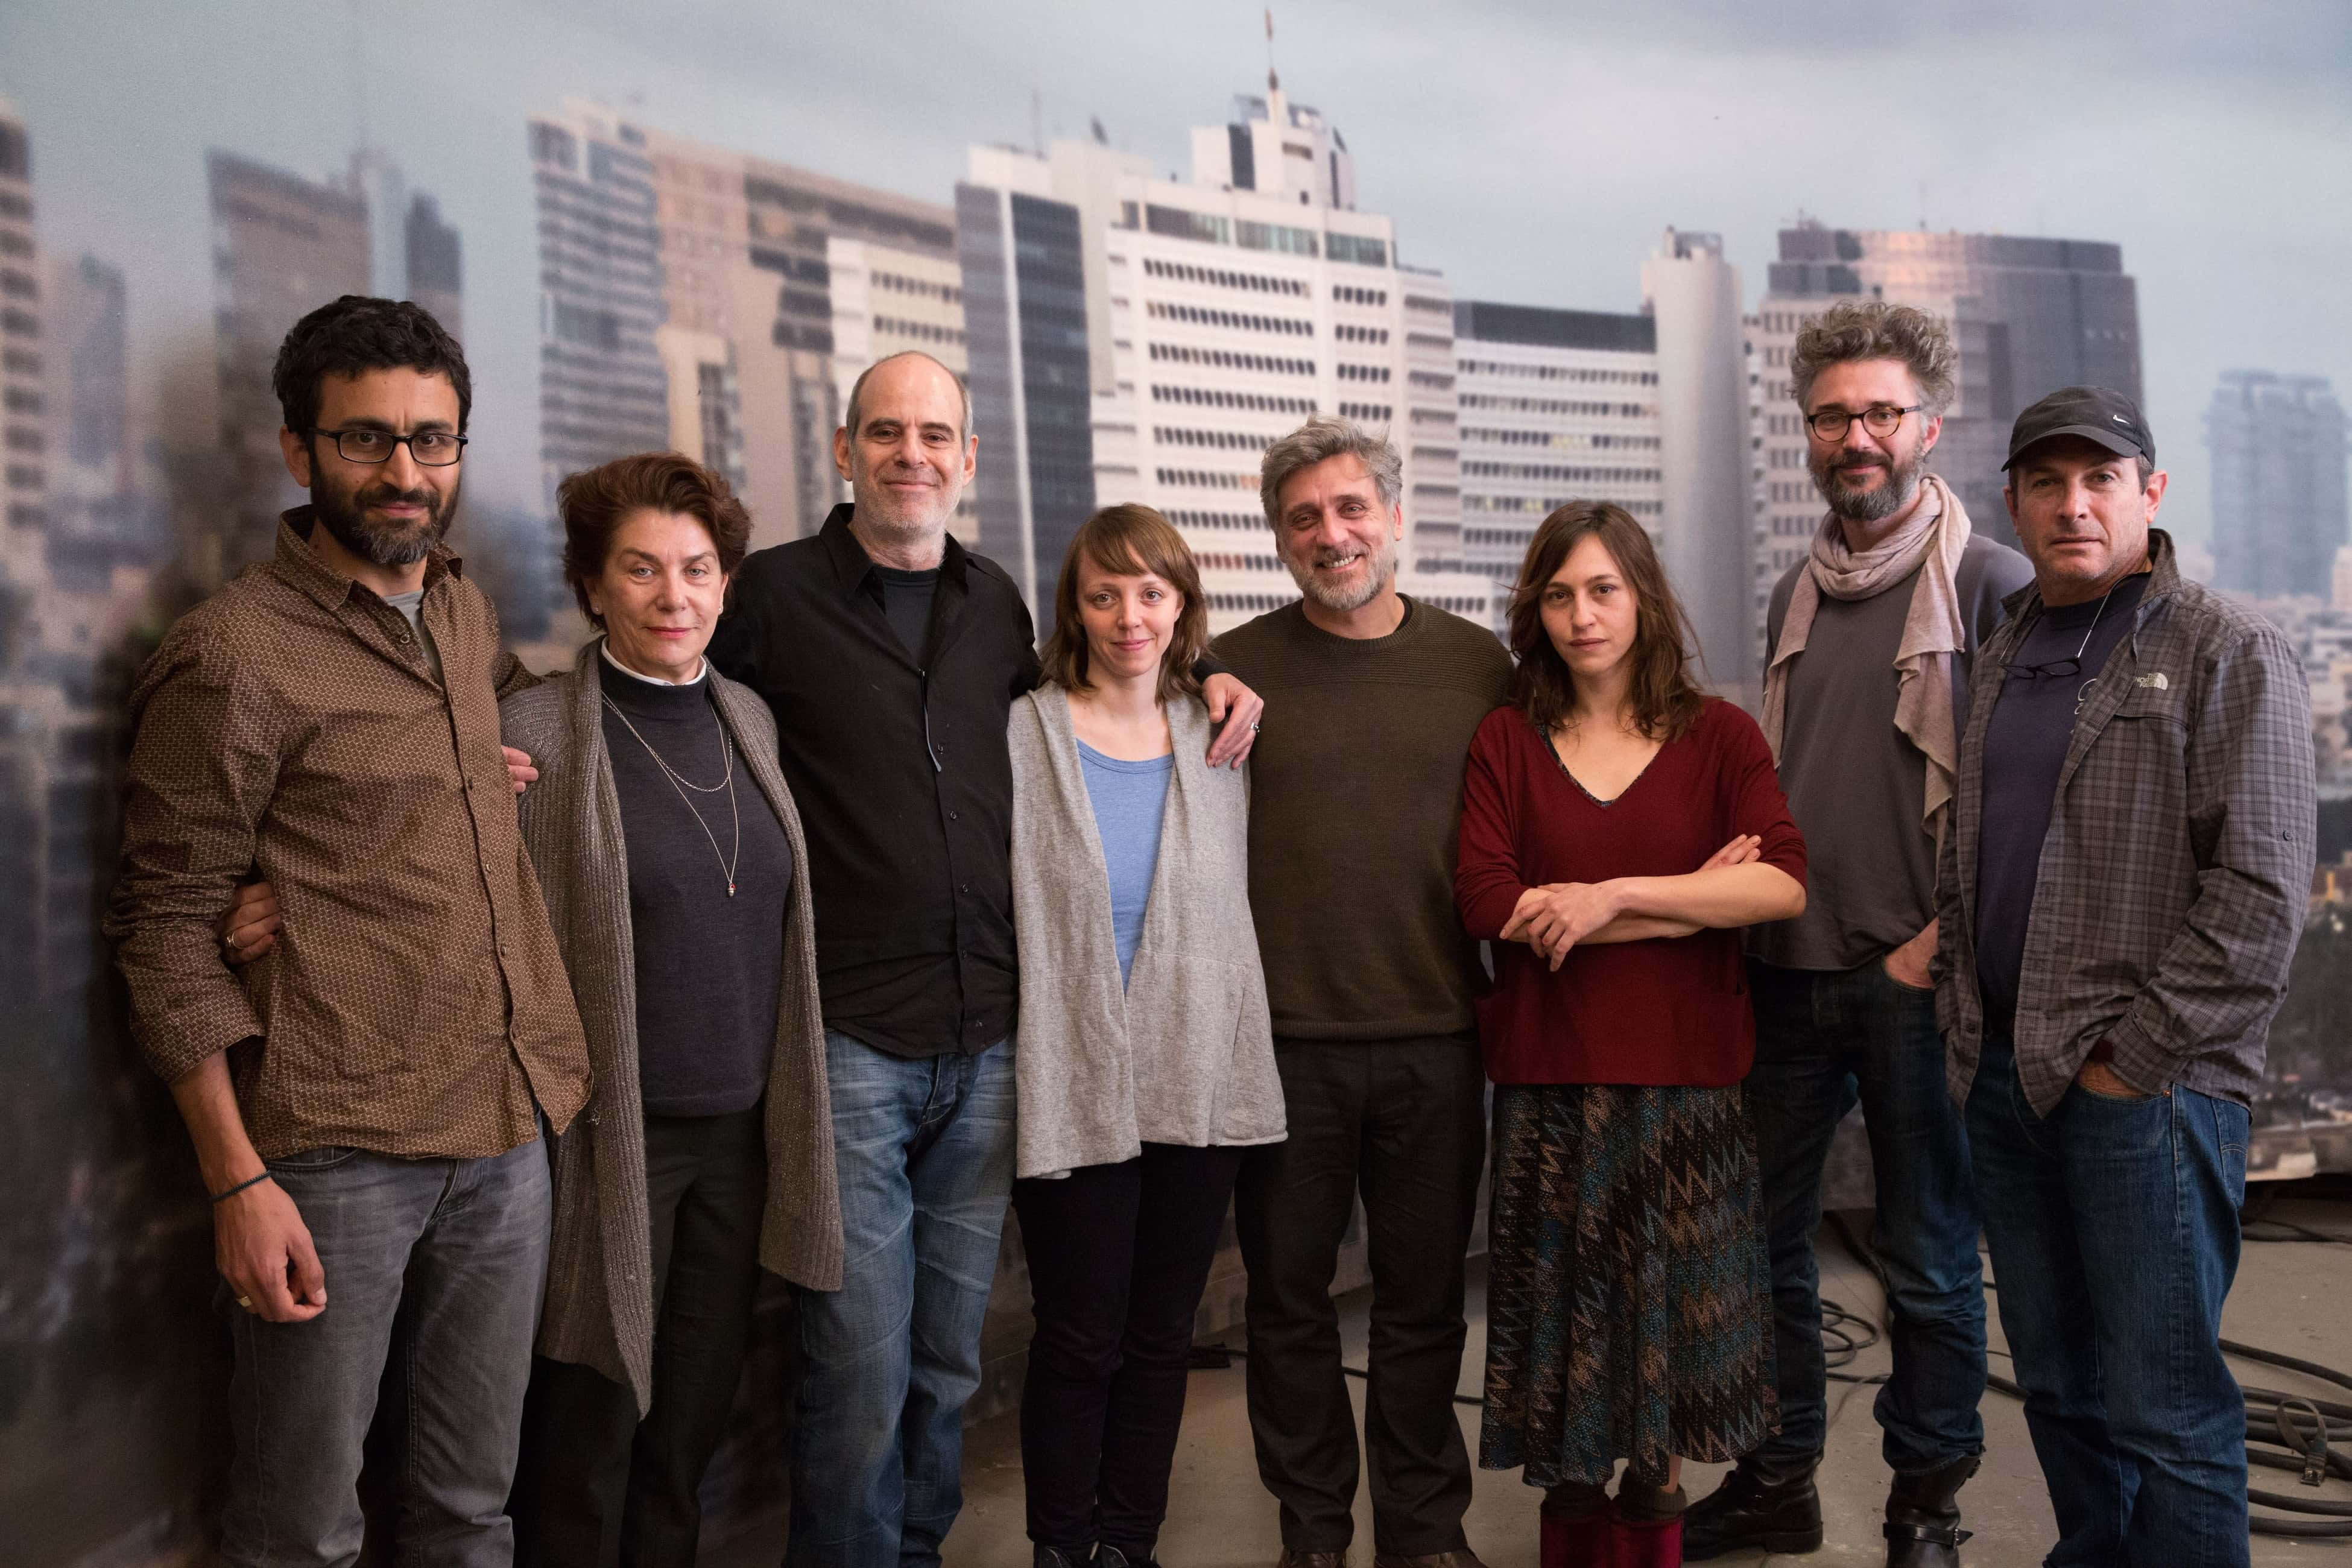 Berlin Film Residencies – On the set of FOXTROT with Producer Eitan Mansuri, Medienboard Berlin-Brandenburg Managing Director Kirsten Niehuus, Director Samuel Maoz, Producer Viola Fügen next to the Main Actors Lior Ashkenazi and Sarah Adler, Producer Michael Weber and DOP Giora Bejach